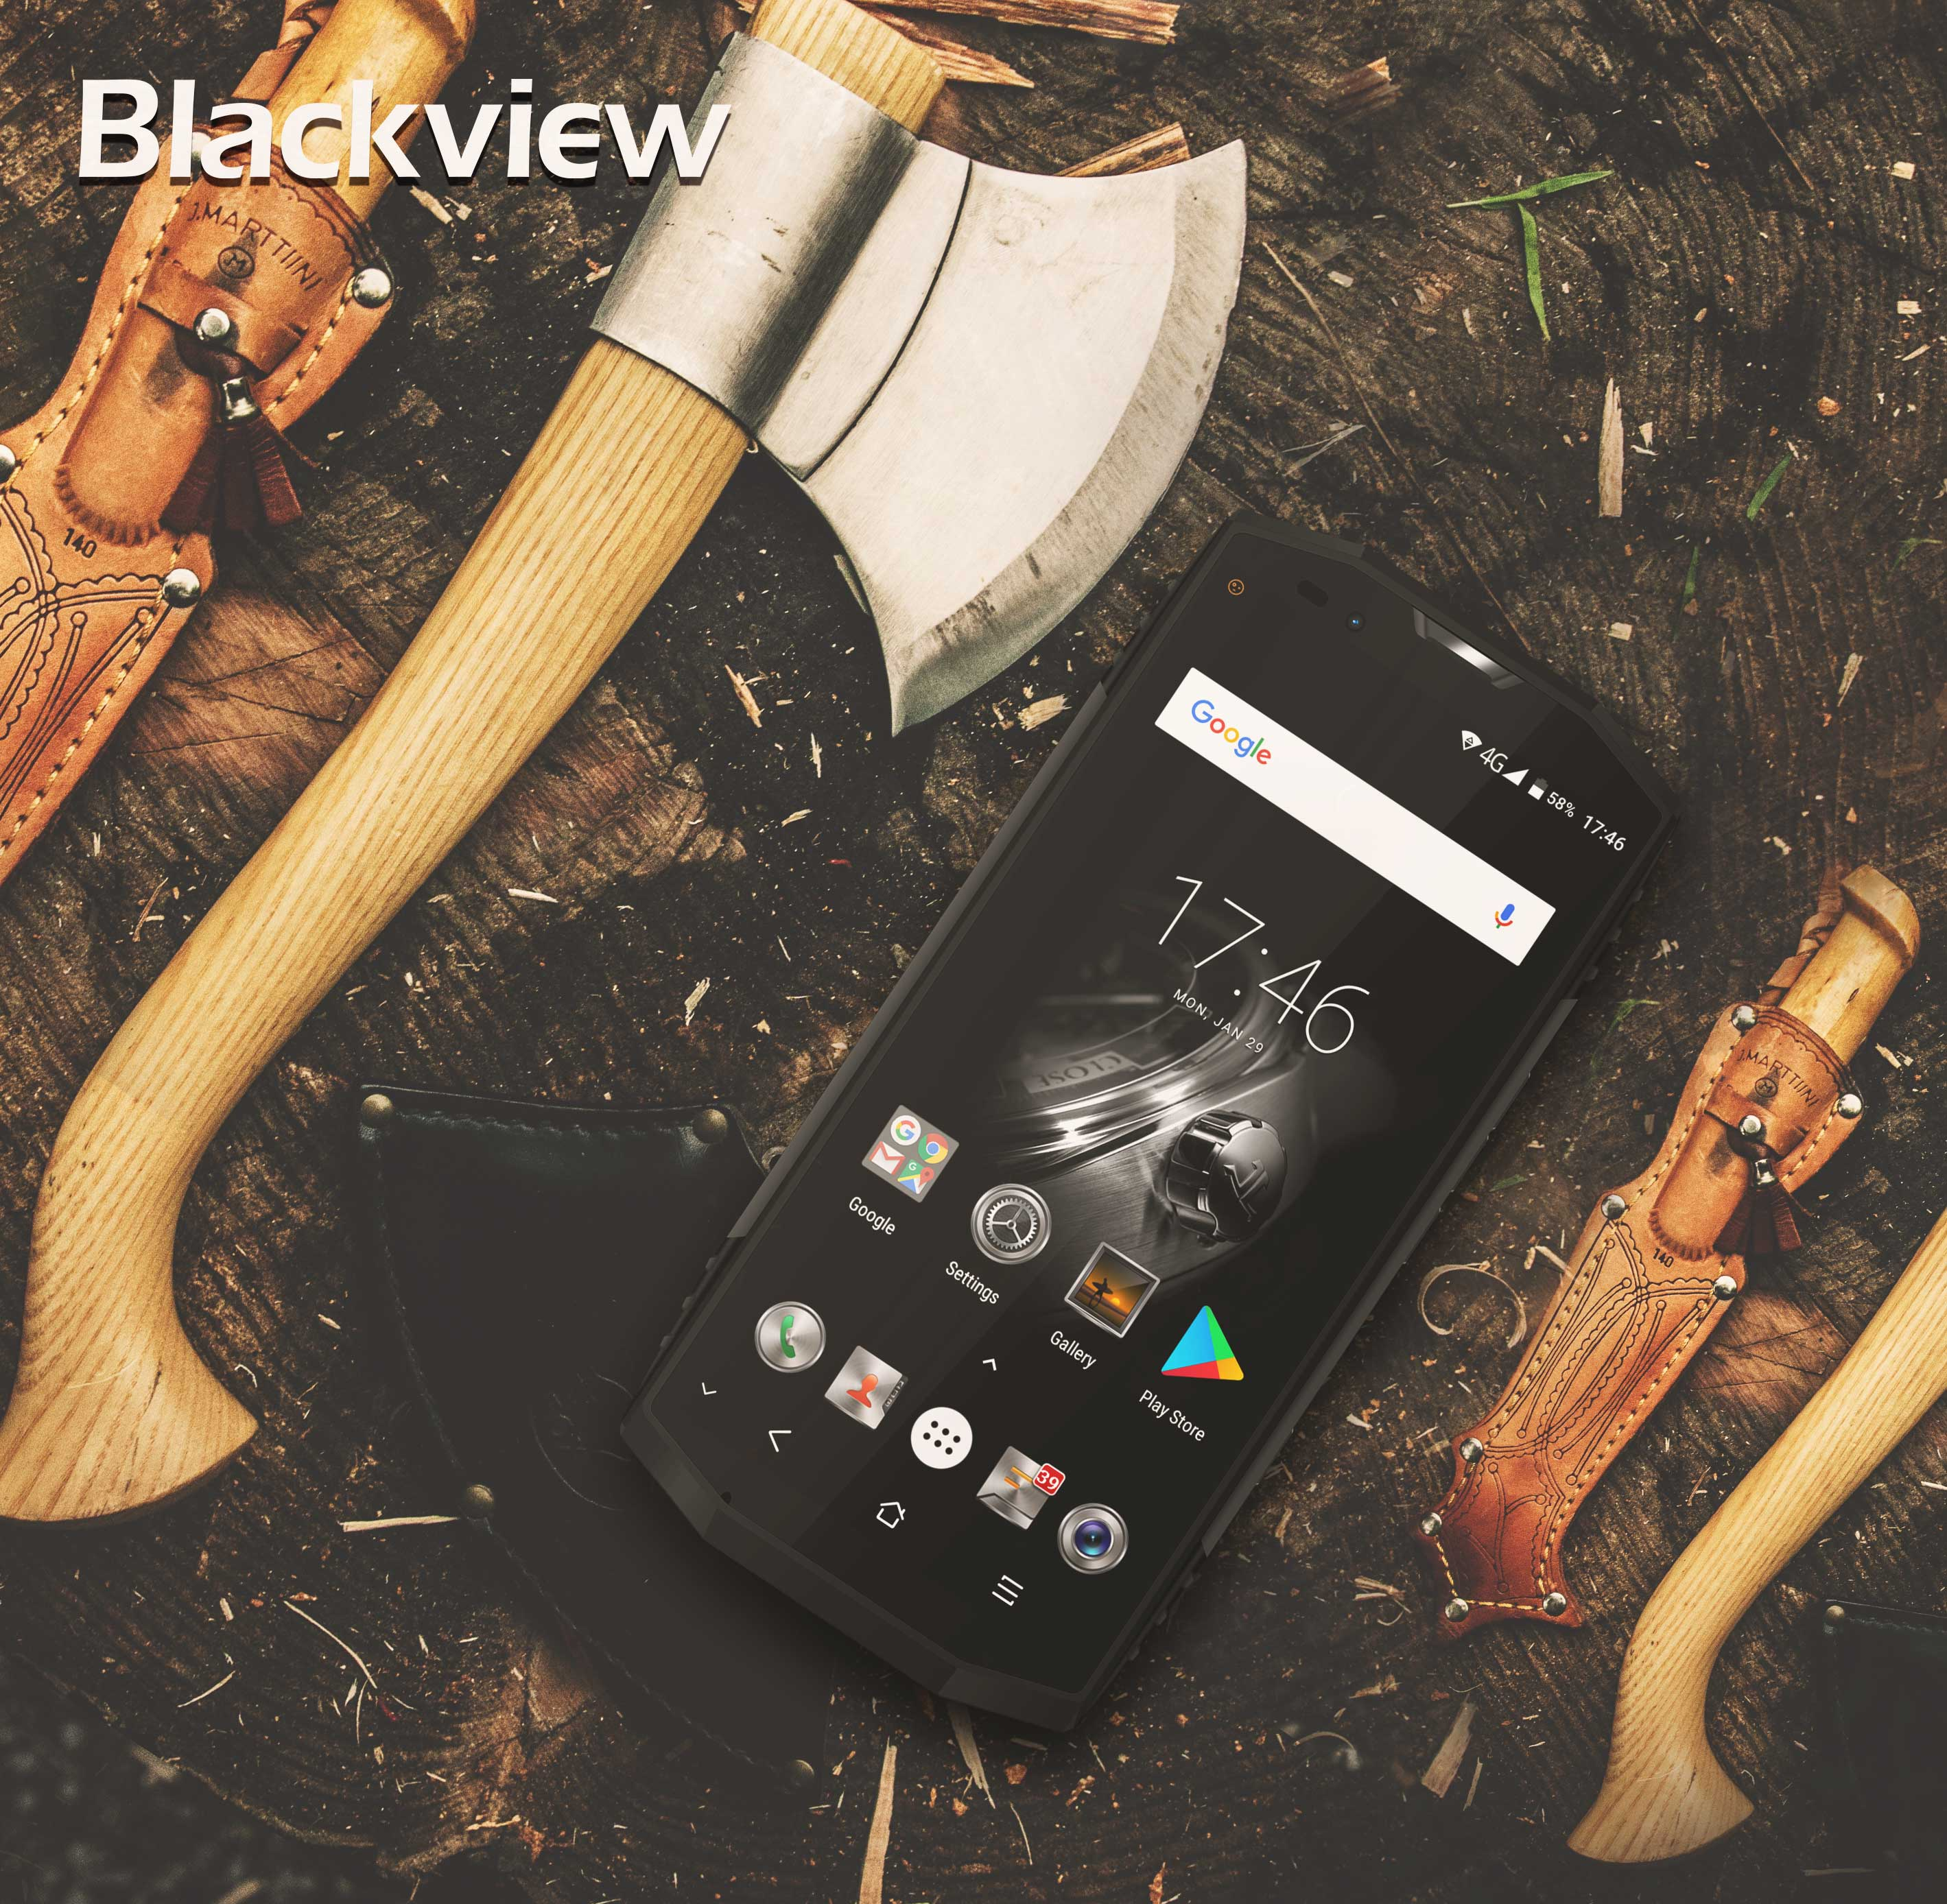 C:UsersAlexeyDownloadsNow Blackview Bv9000 Pro is equipped with 189 FHD full screenNow Blackview Bv9000 Pro is equipped with 189 FHD full screen1.jpg